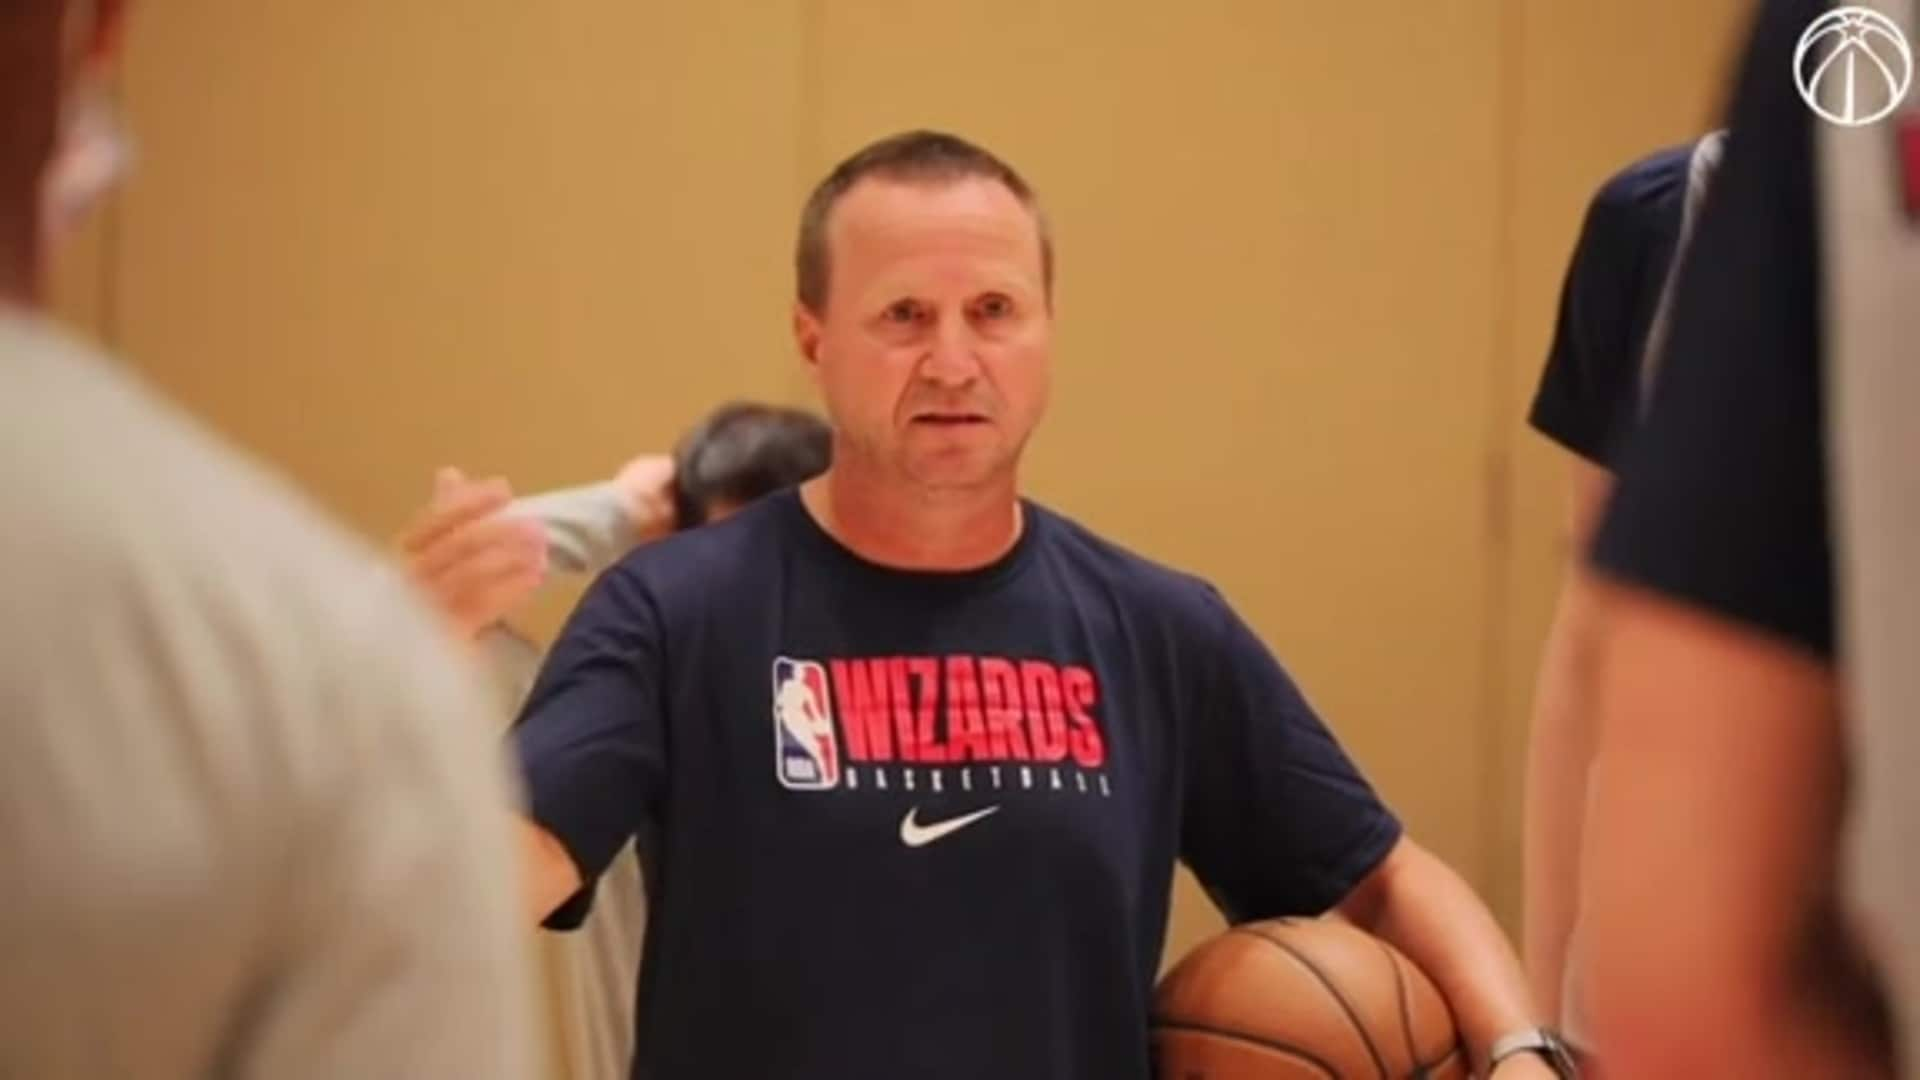 Scott Brooks' speech to team before first practice - 7/9/20